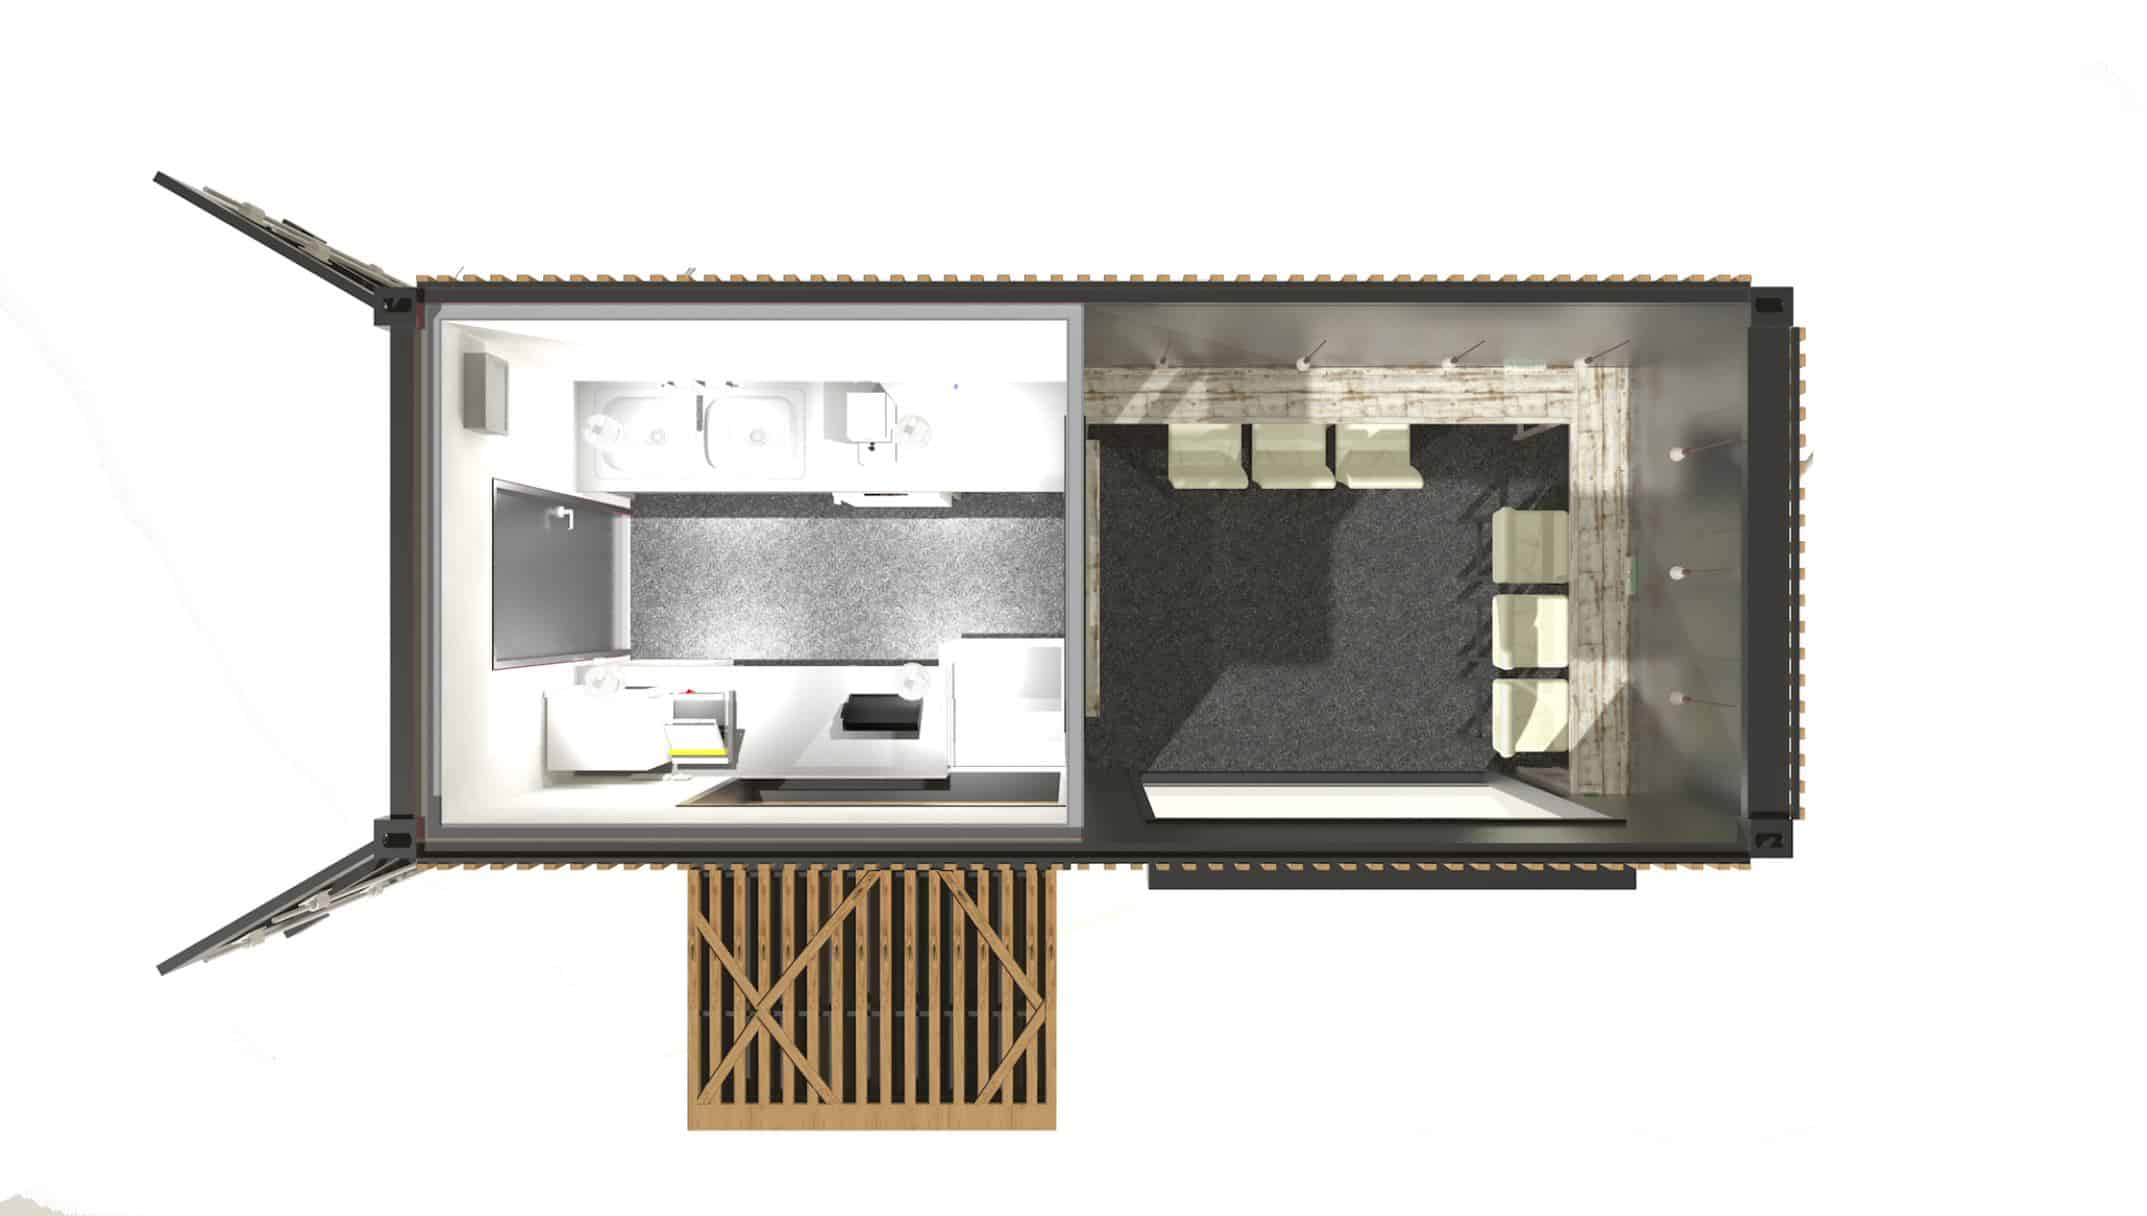 Plan view of a shipping container cafe design